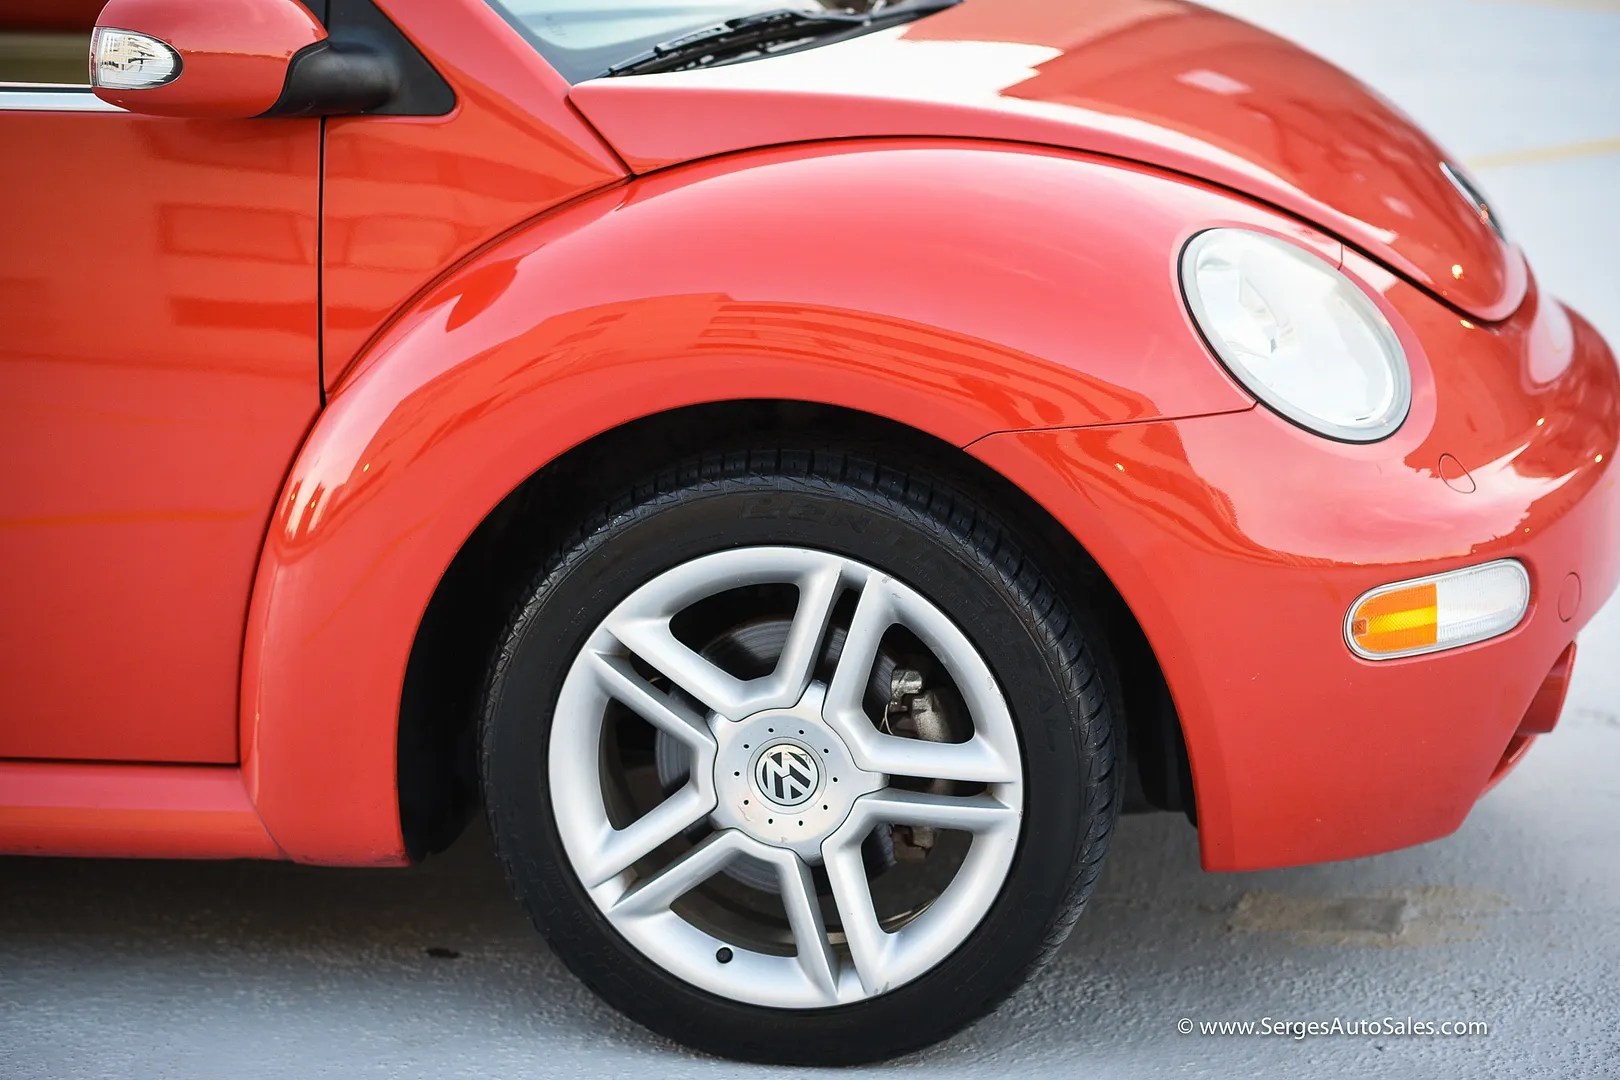 photo beetle-59_zps8c5sixgl.jpg